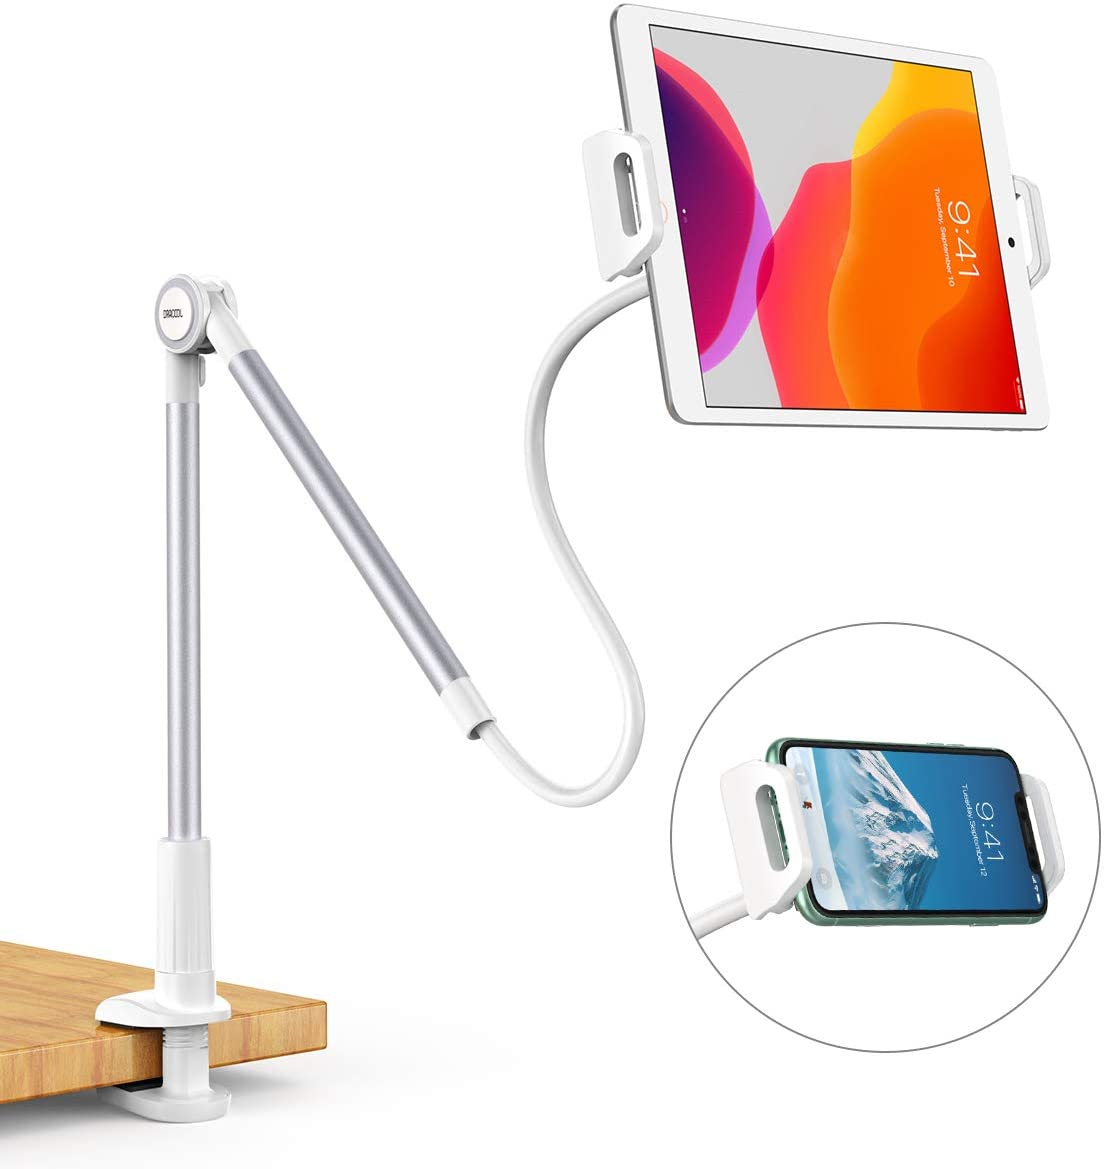 Dracool for Tablet Holder Gooseneck iPad Phone Stand Mount Lazy Holder Arm Clip 360 Adjustable Flexible for Desk Bed for iPad Mini Pro Air, iPhone, Samsung Galaxy Tabs More 4.7-10.5